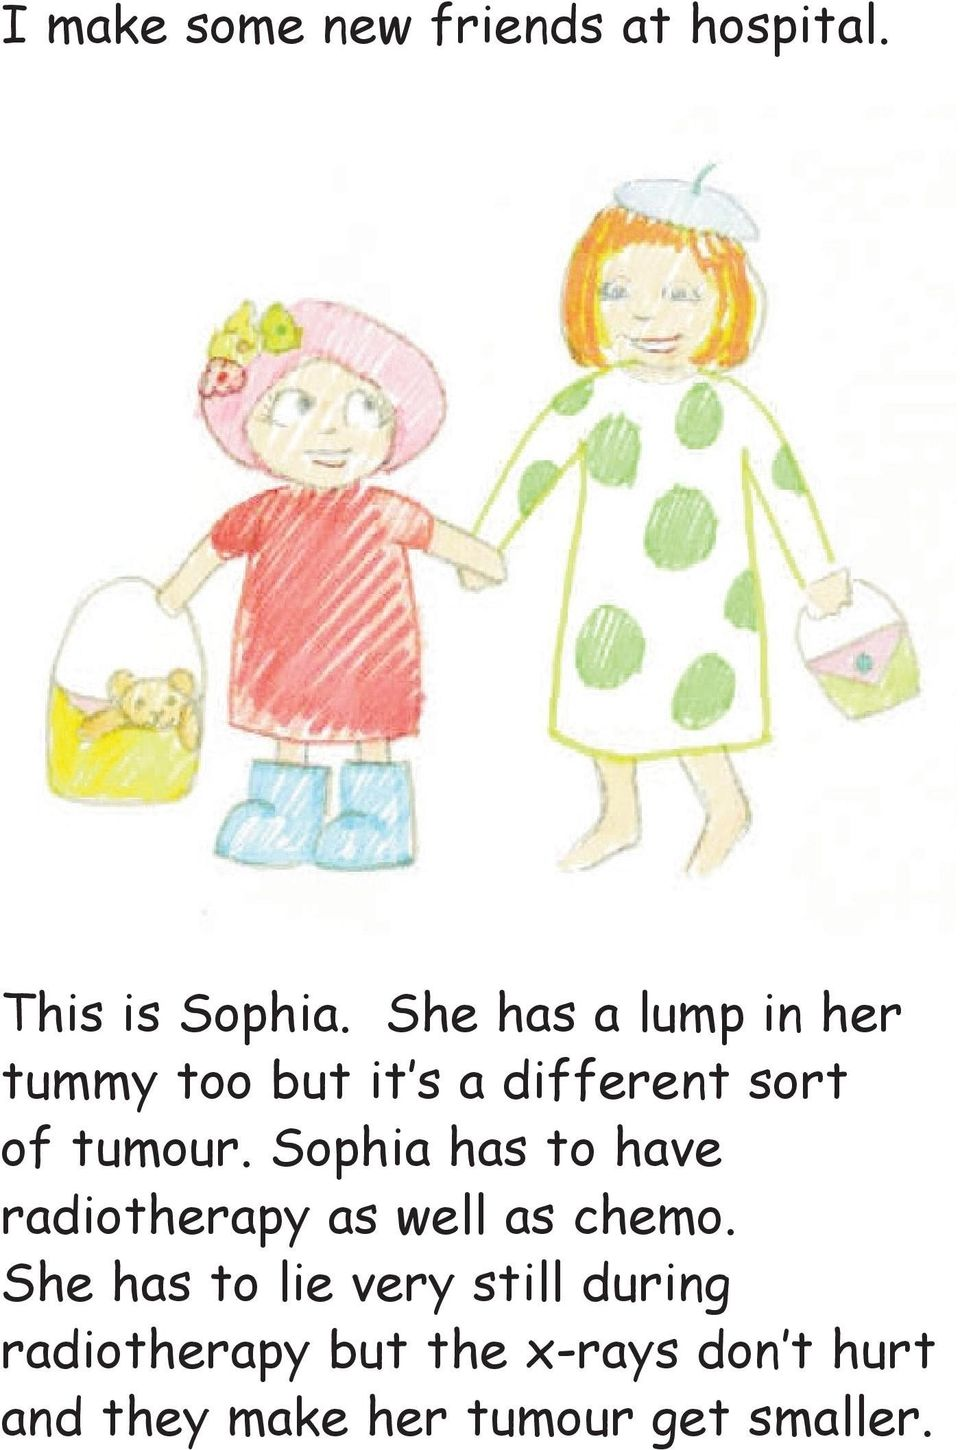 Sophia has to have radiotherapy as well as chemo.